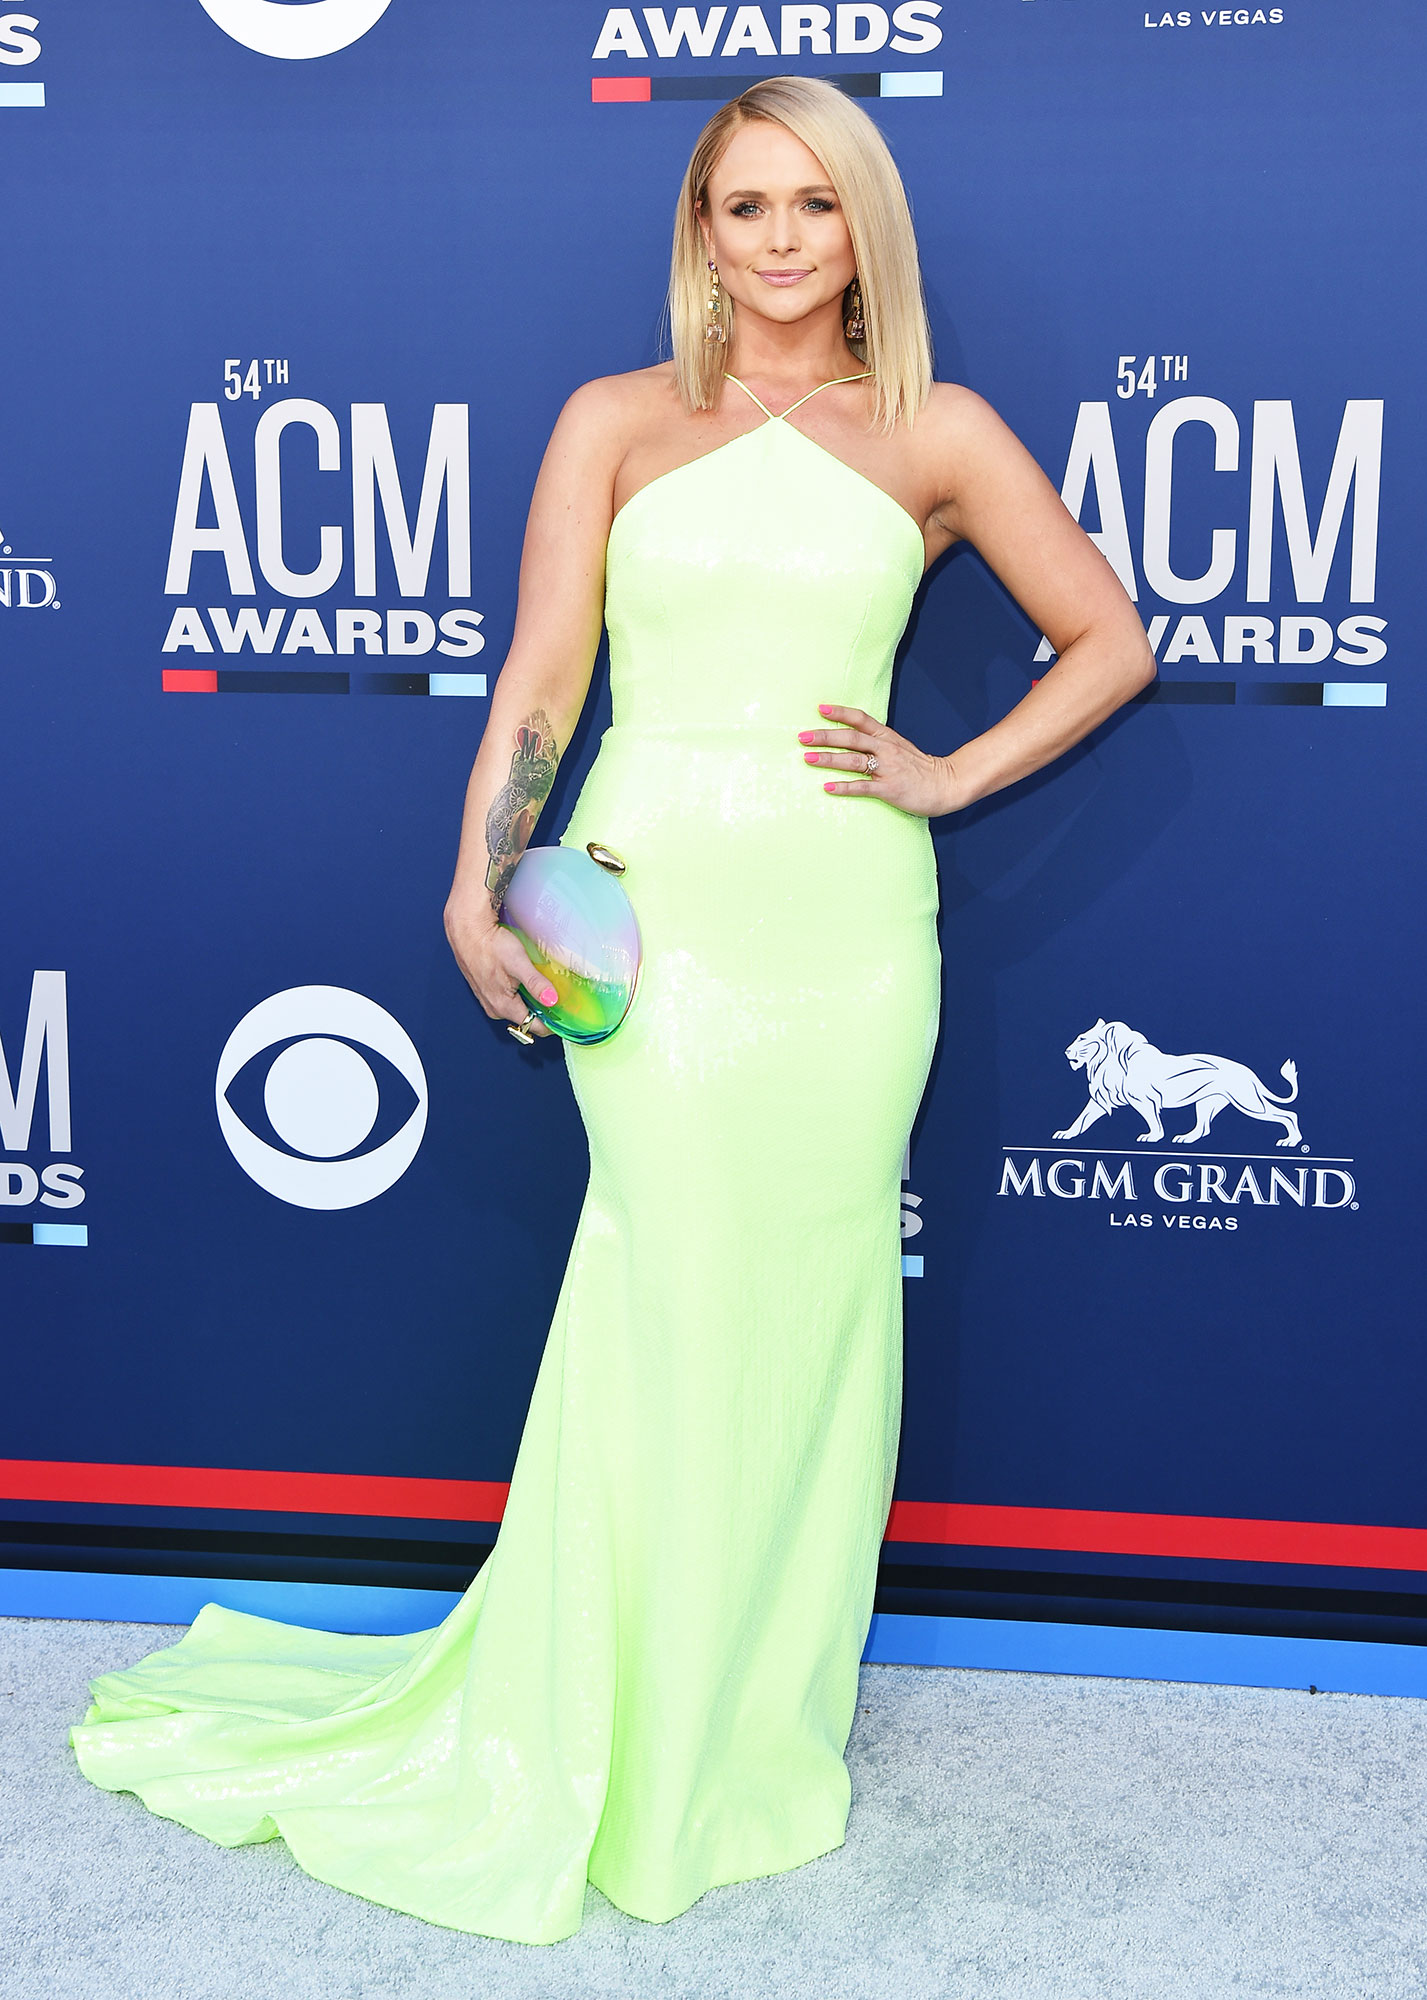 """Miranda Lambert The Best Looks From the Country Music Awards Red Carpet - """"The Man"""" singer stunned in a sleek lime green halter dress with pointy purple heels to top it off."""